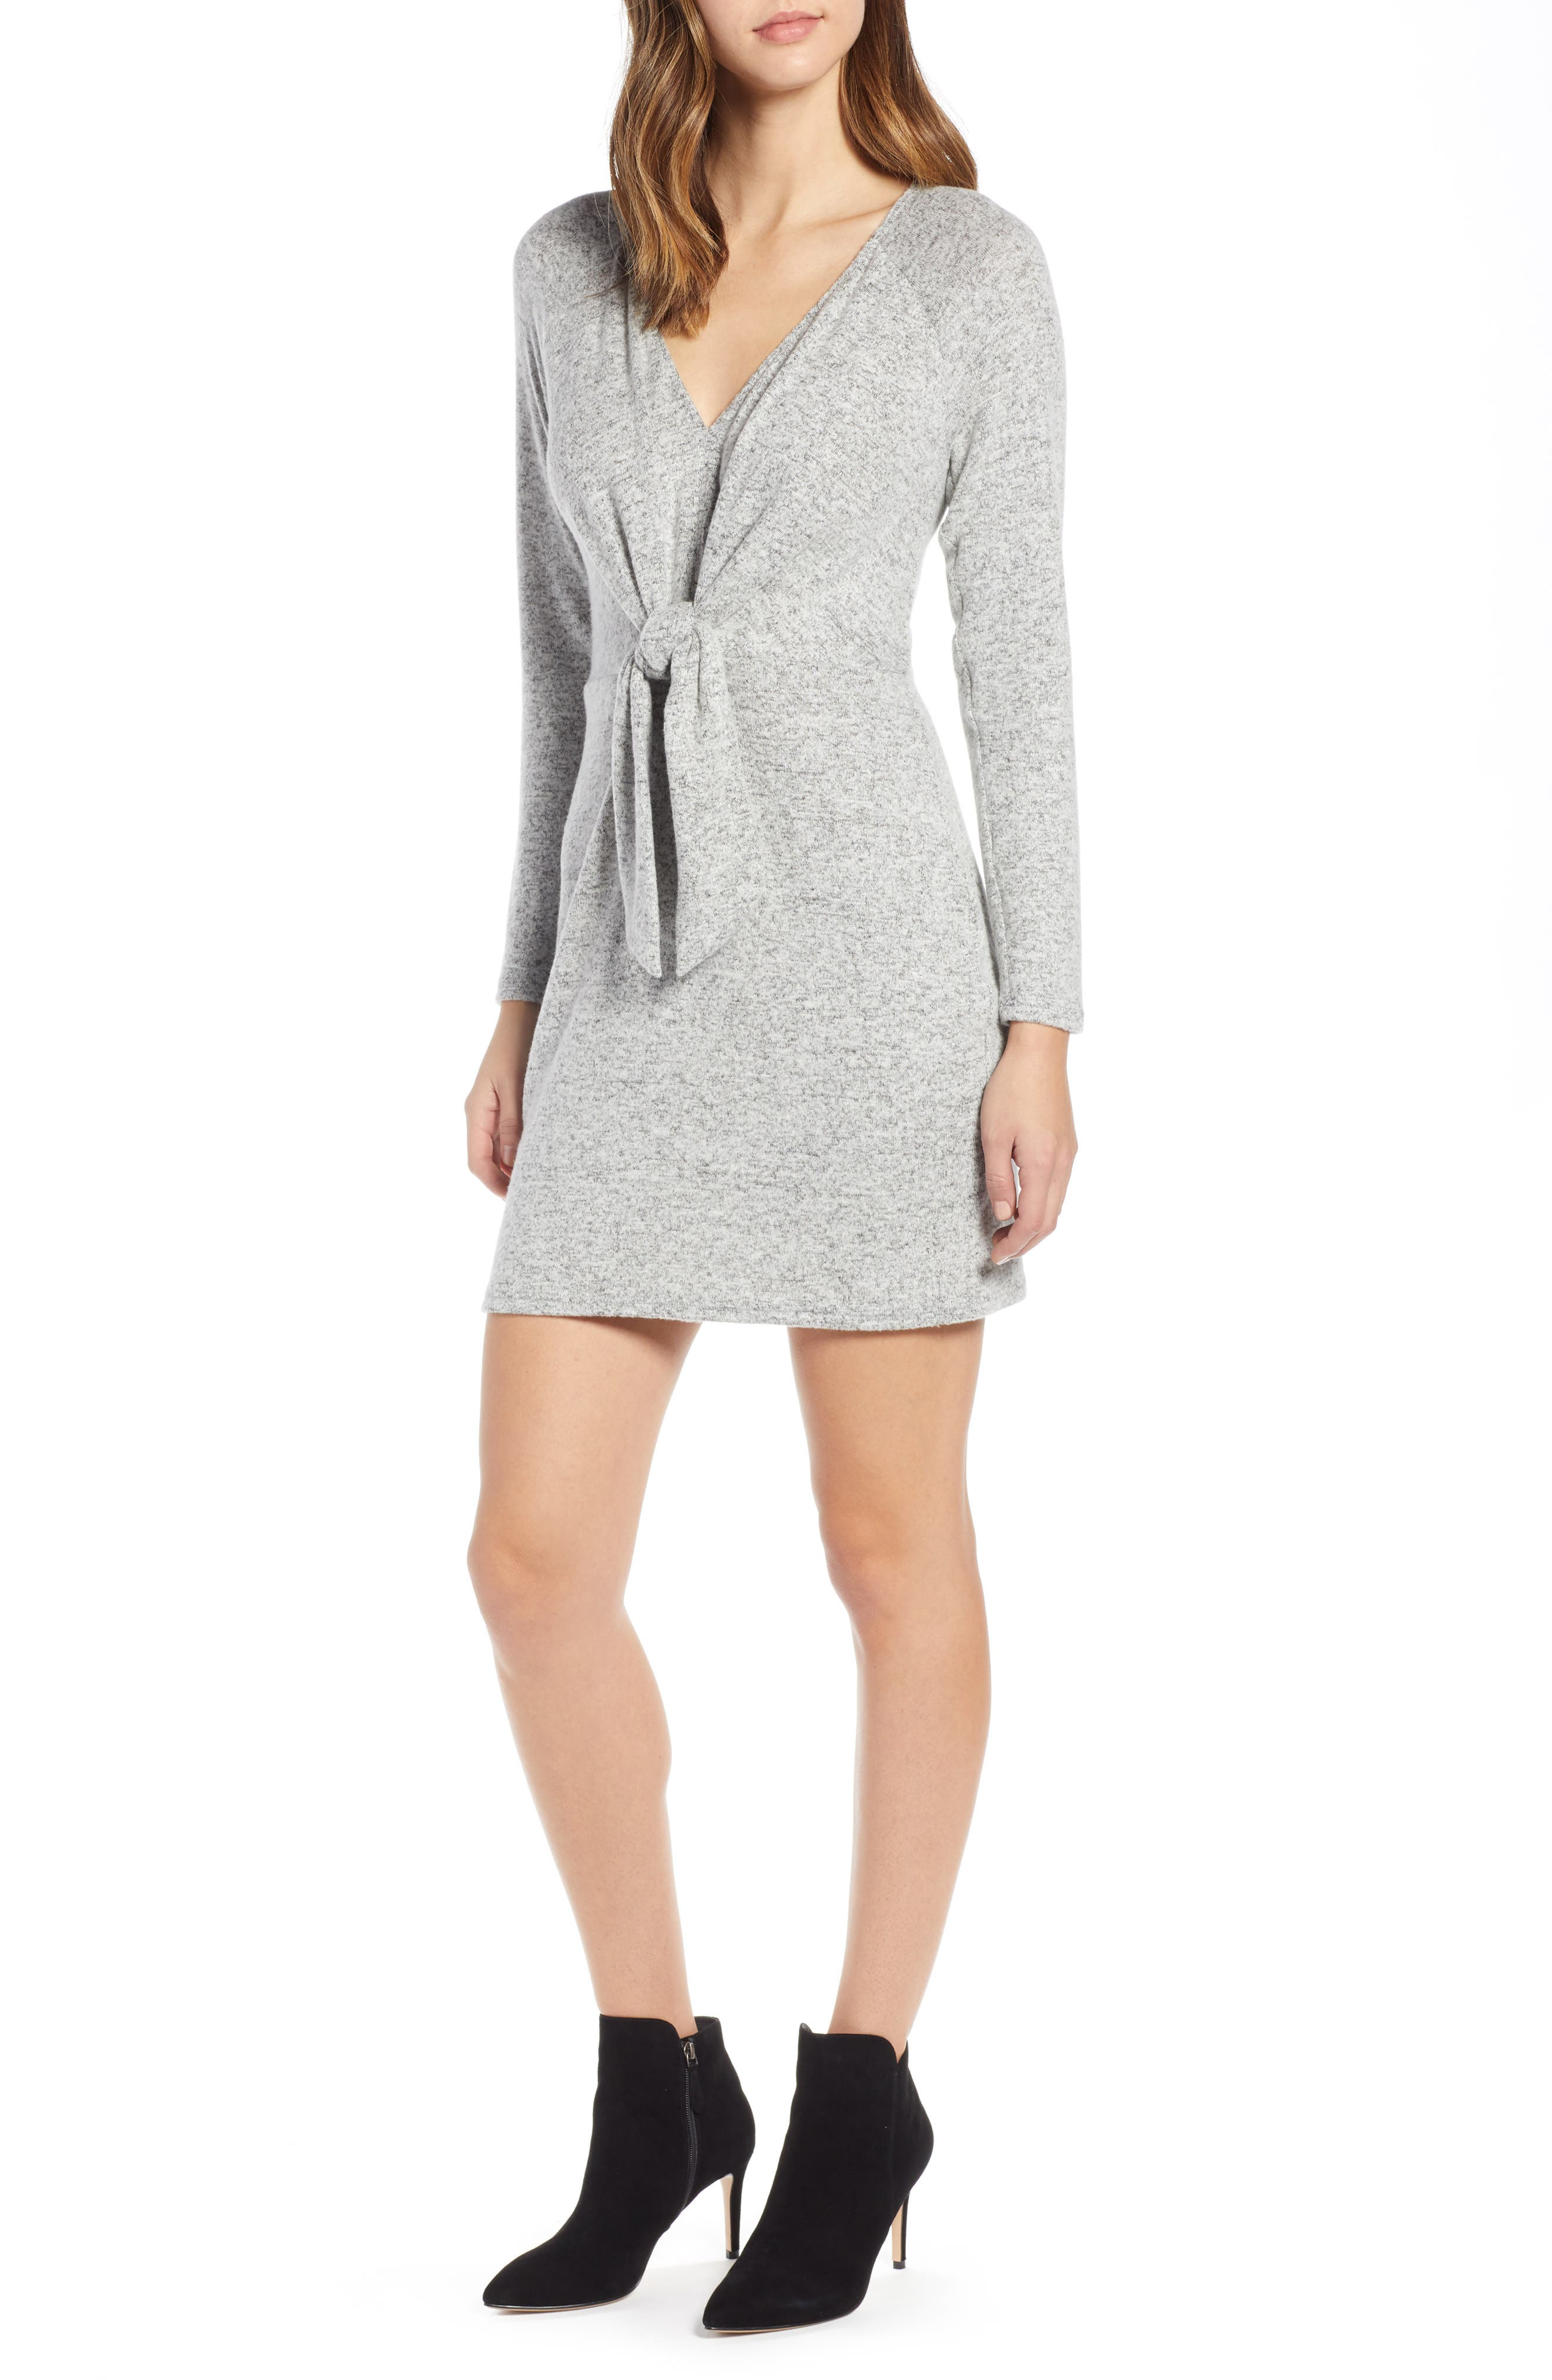 Socialite Tie Front Sheath Dress, Grey